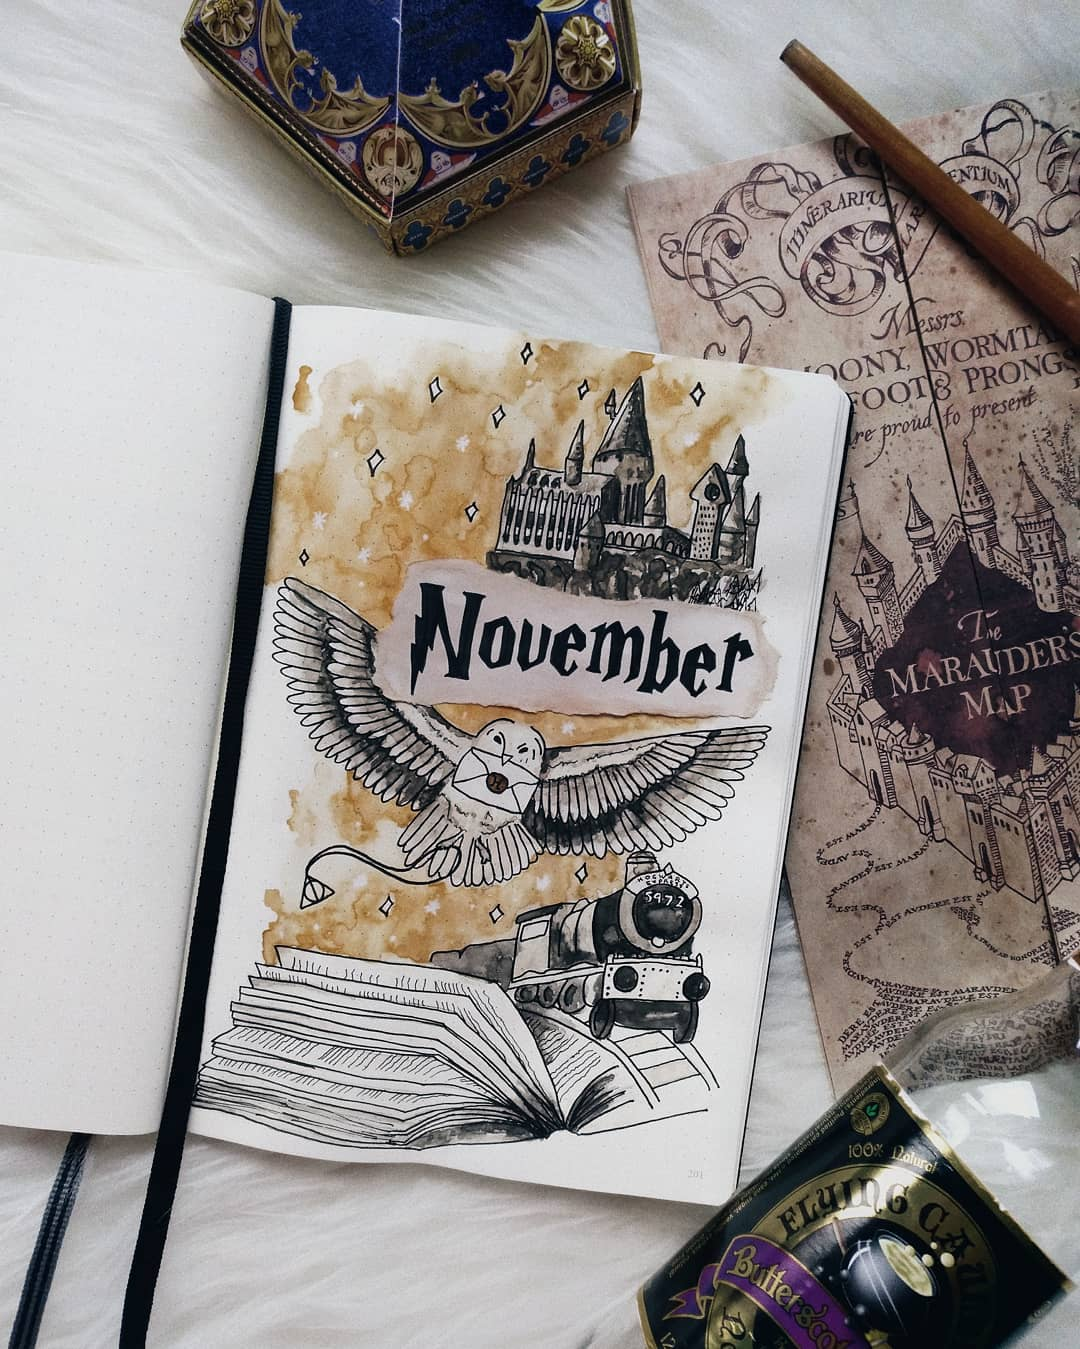 17 Harry Potter Bullet Journal Spreads That Are Magical. If you're looking for inspiration for your own Harry Potter Bujo theme, click here for great ideas for your Monthly, Weekly and Tracker Spreads. #bulletjournal #bujo